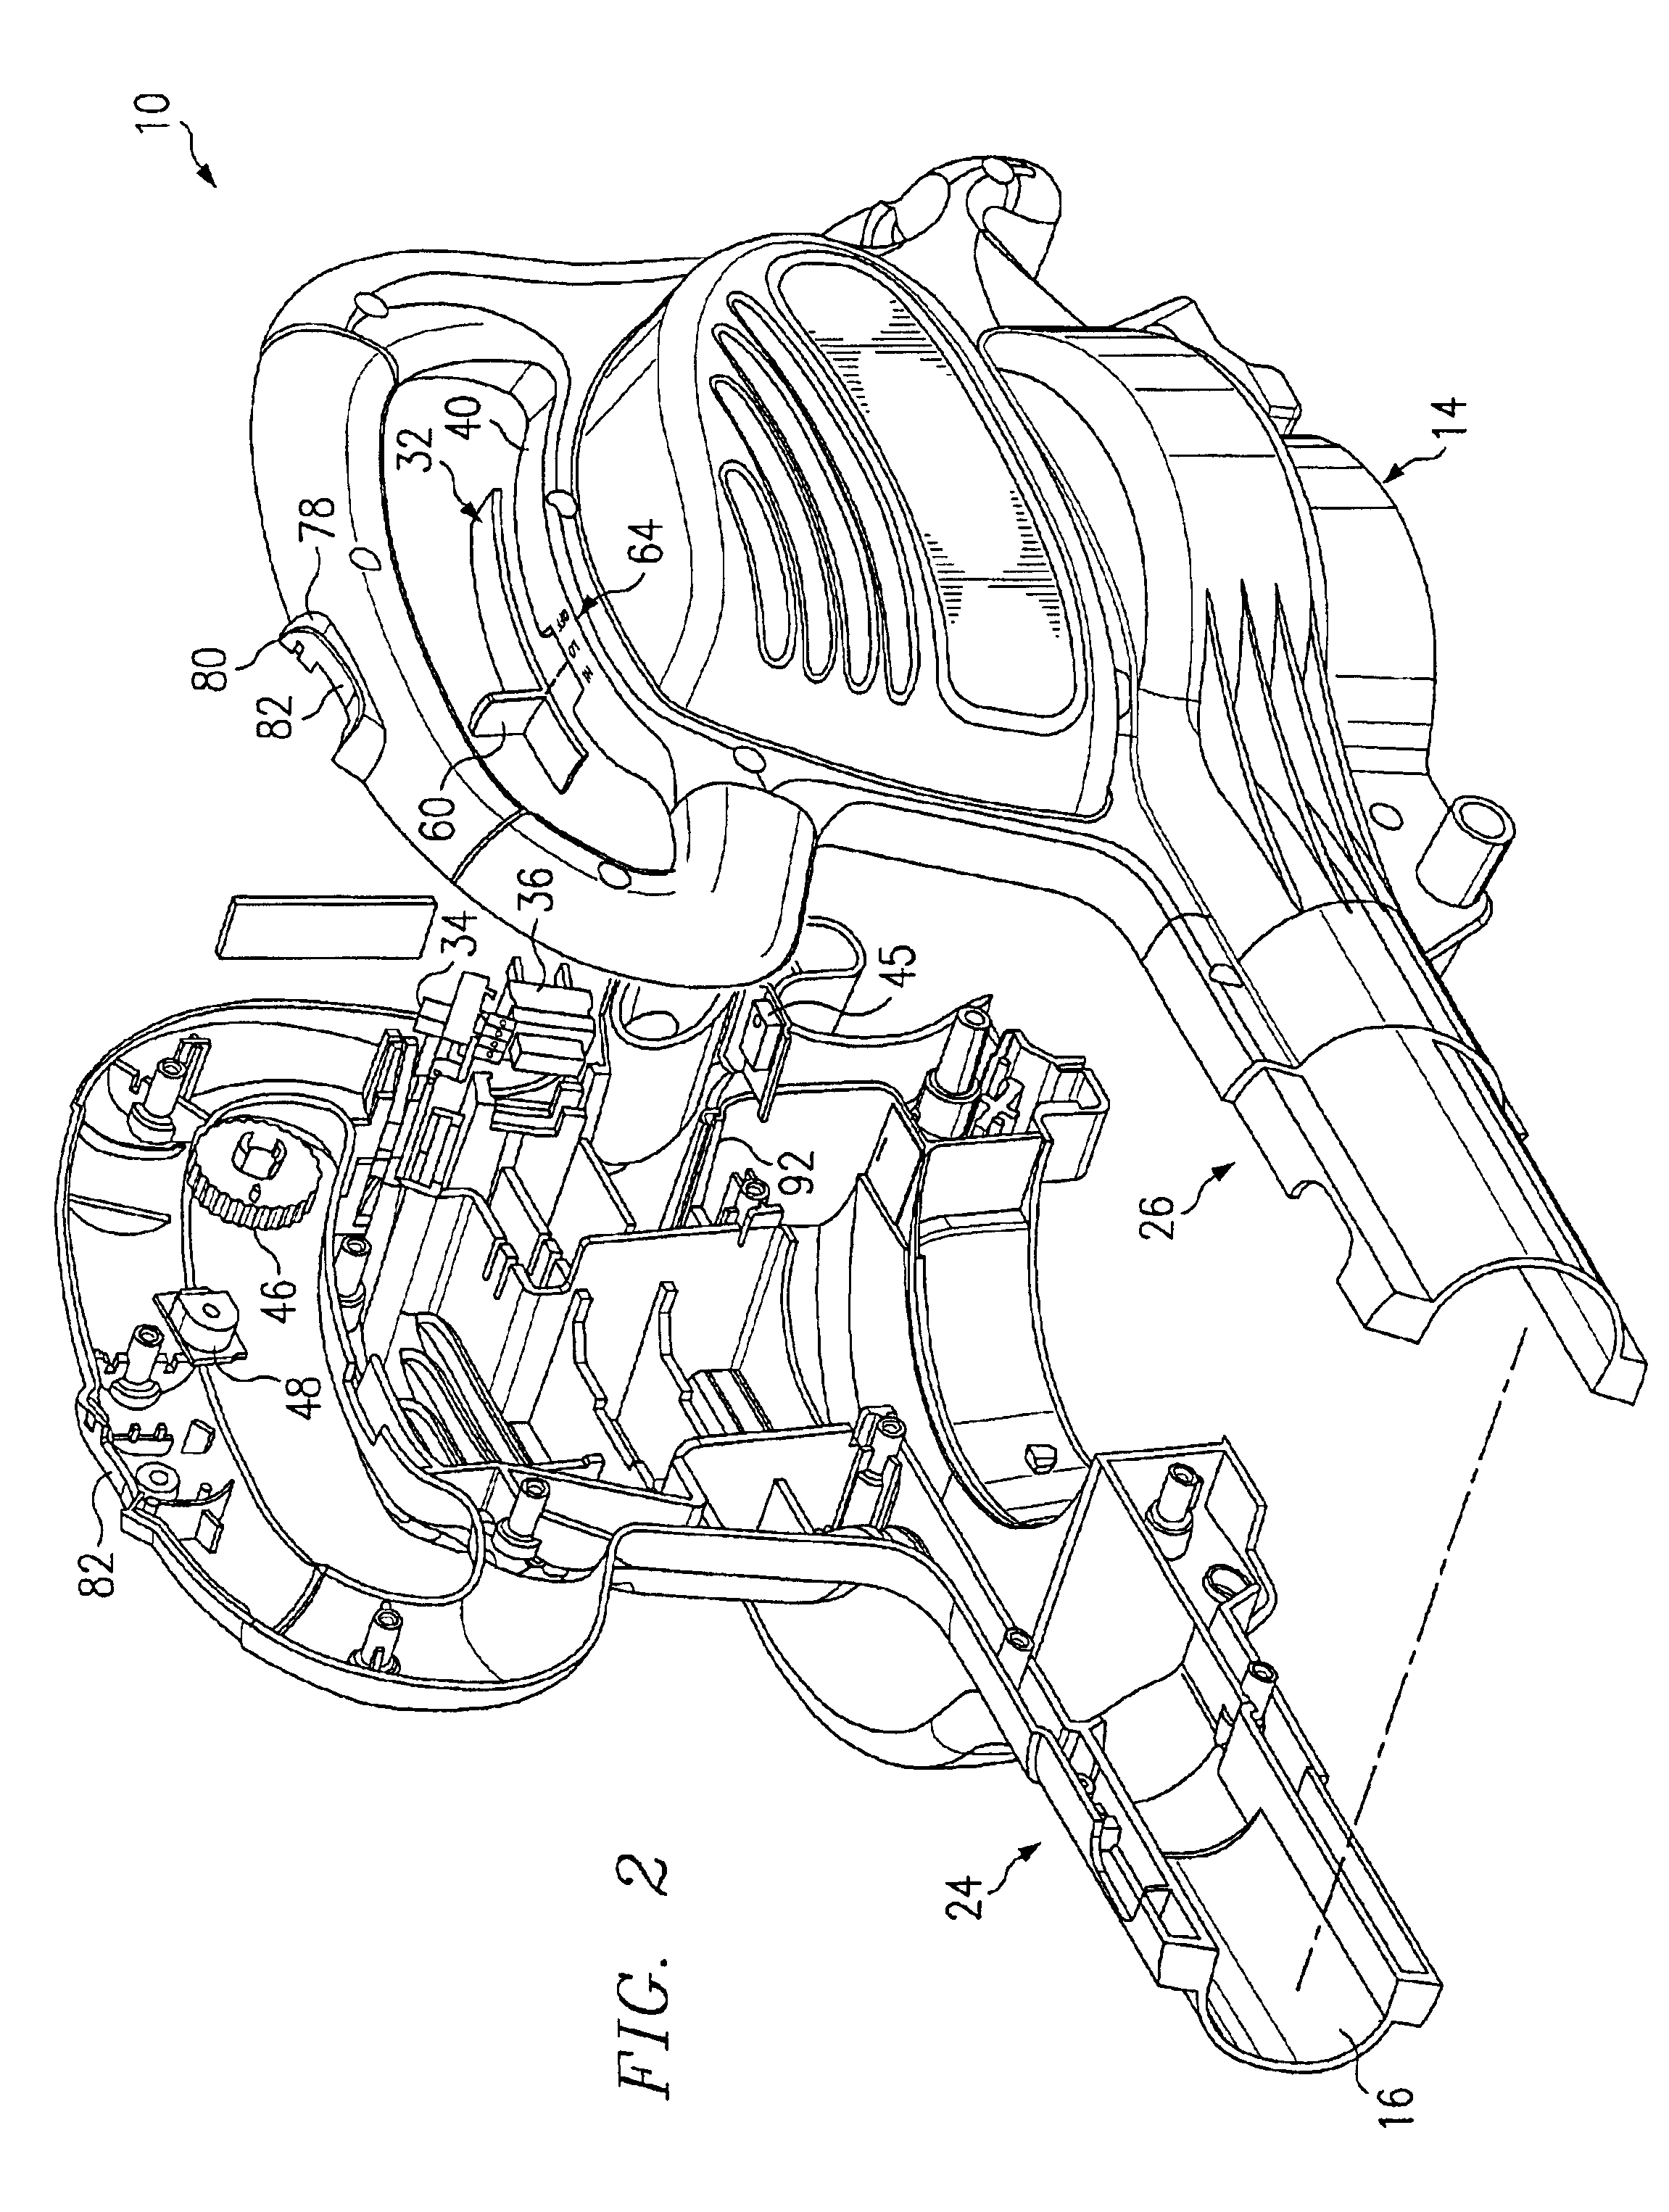 stihl br backpack blower parts diagram in html